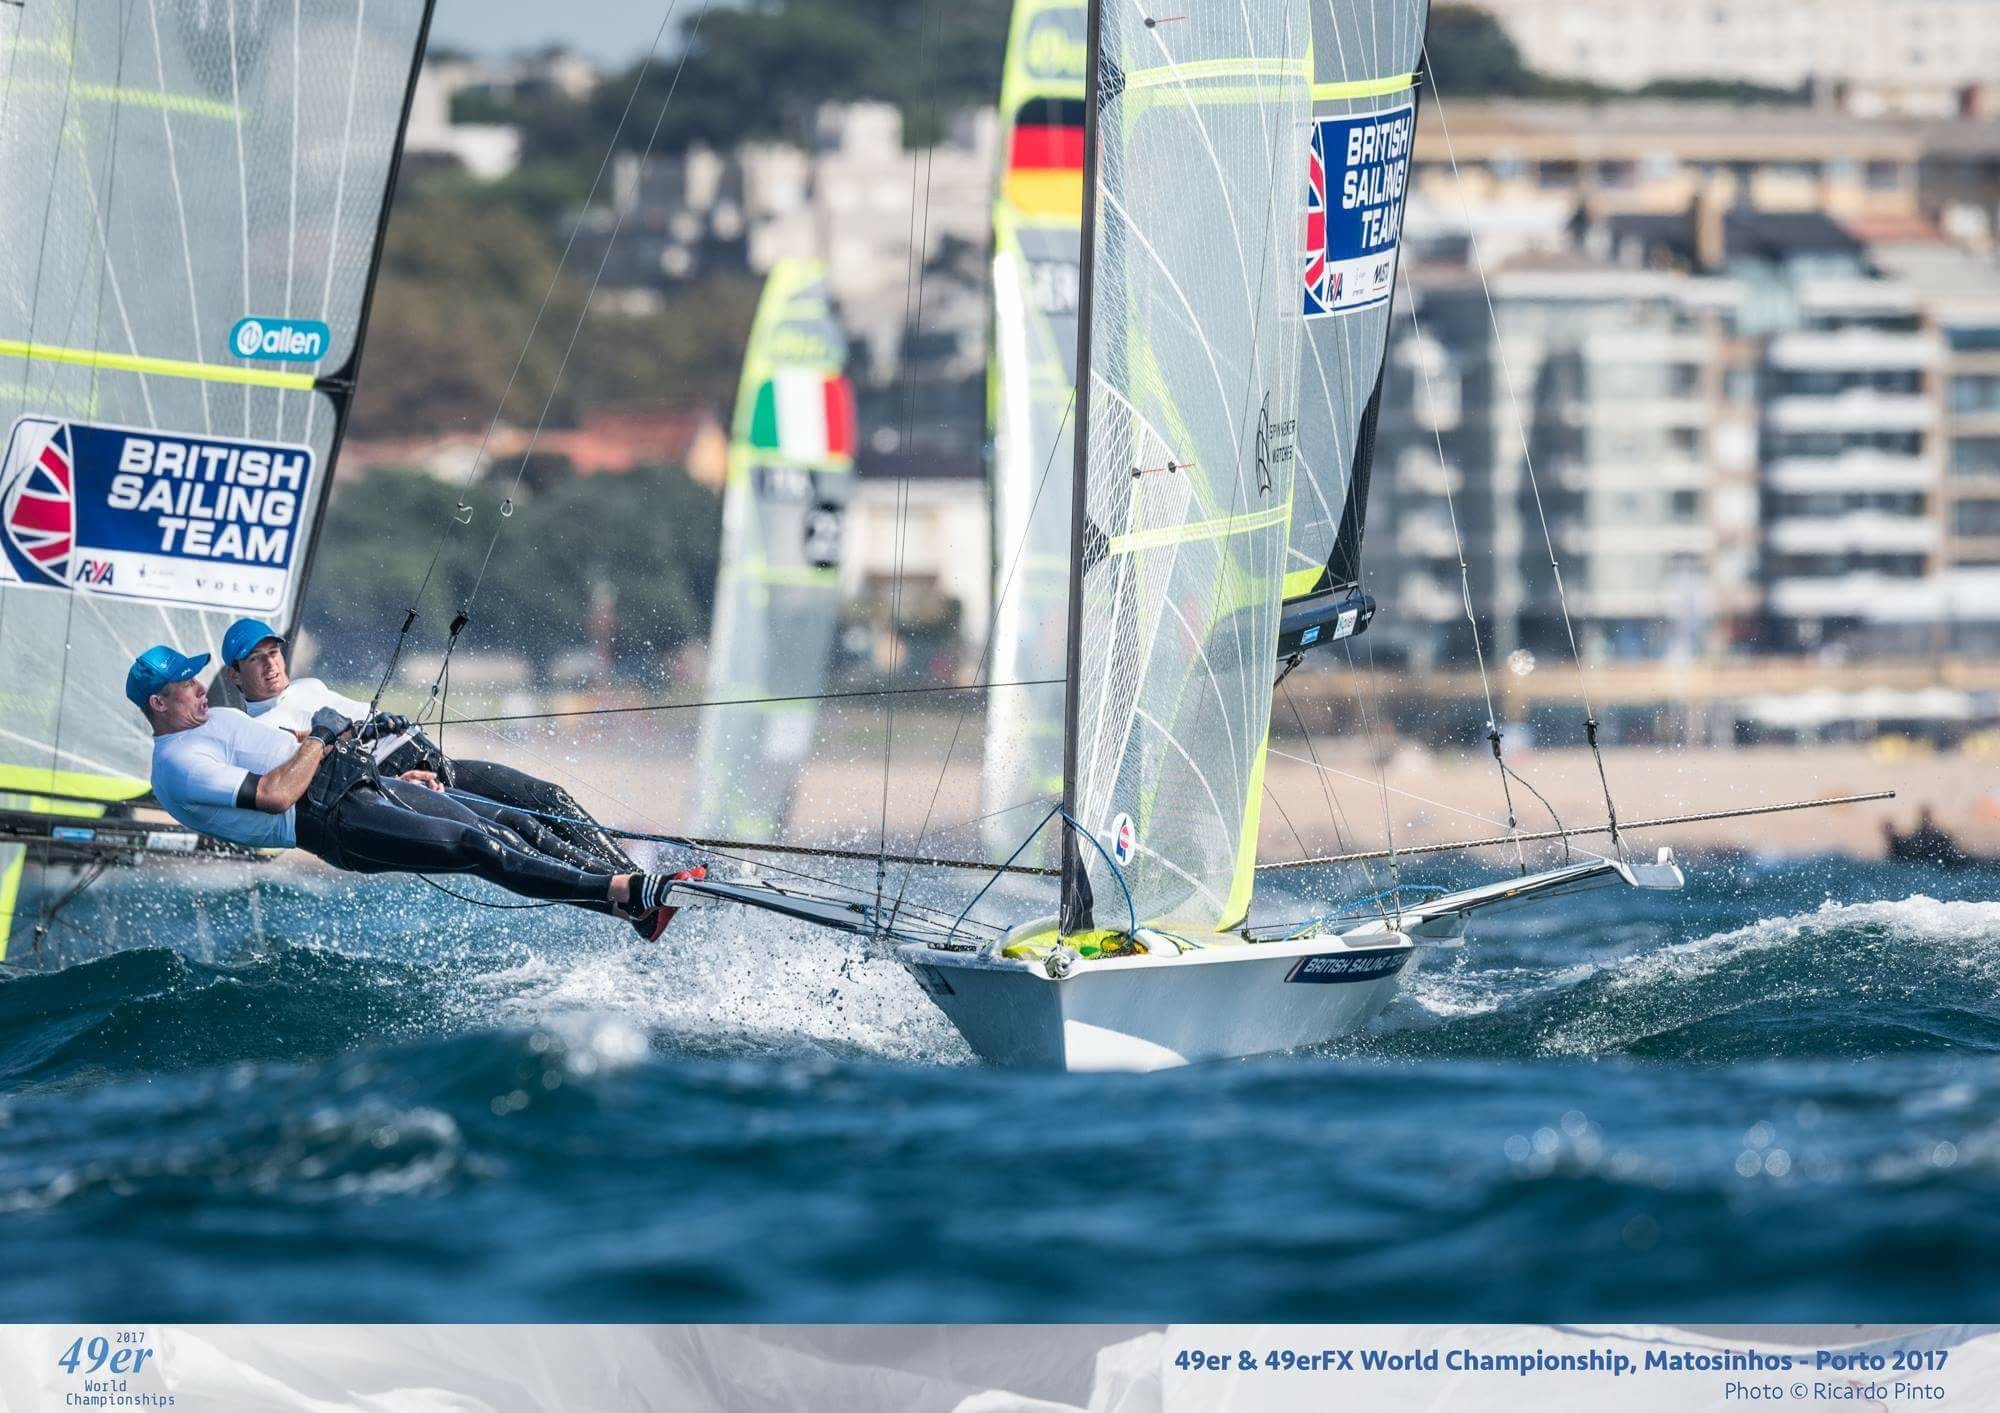 Fletcher and Bithell winning the Worlds in Portugal